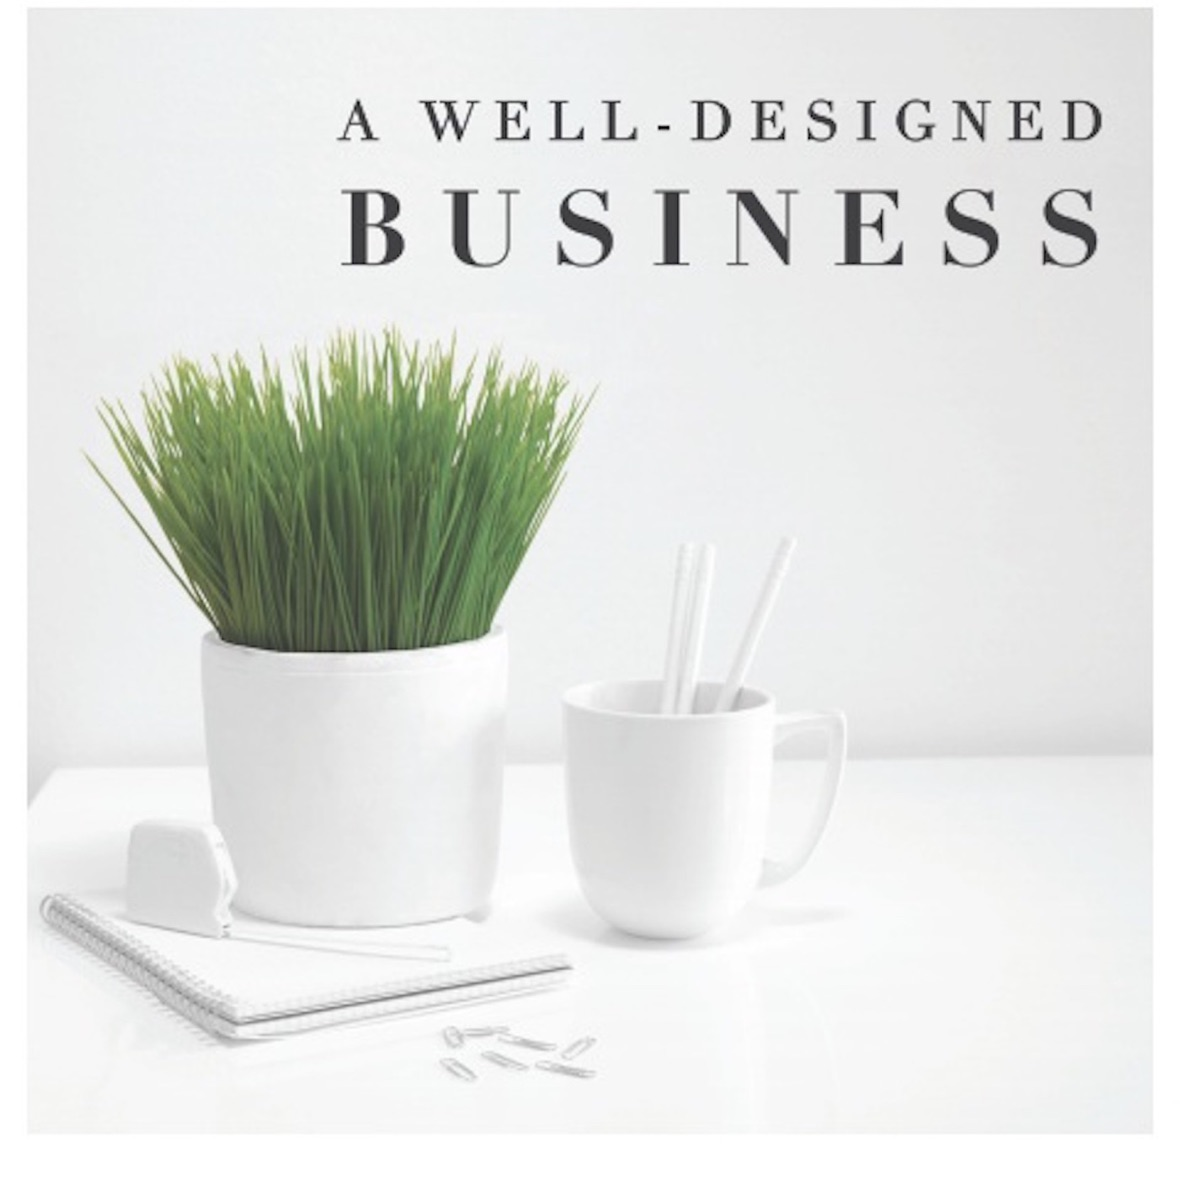 A Well-Designed Business®